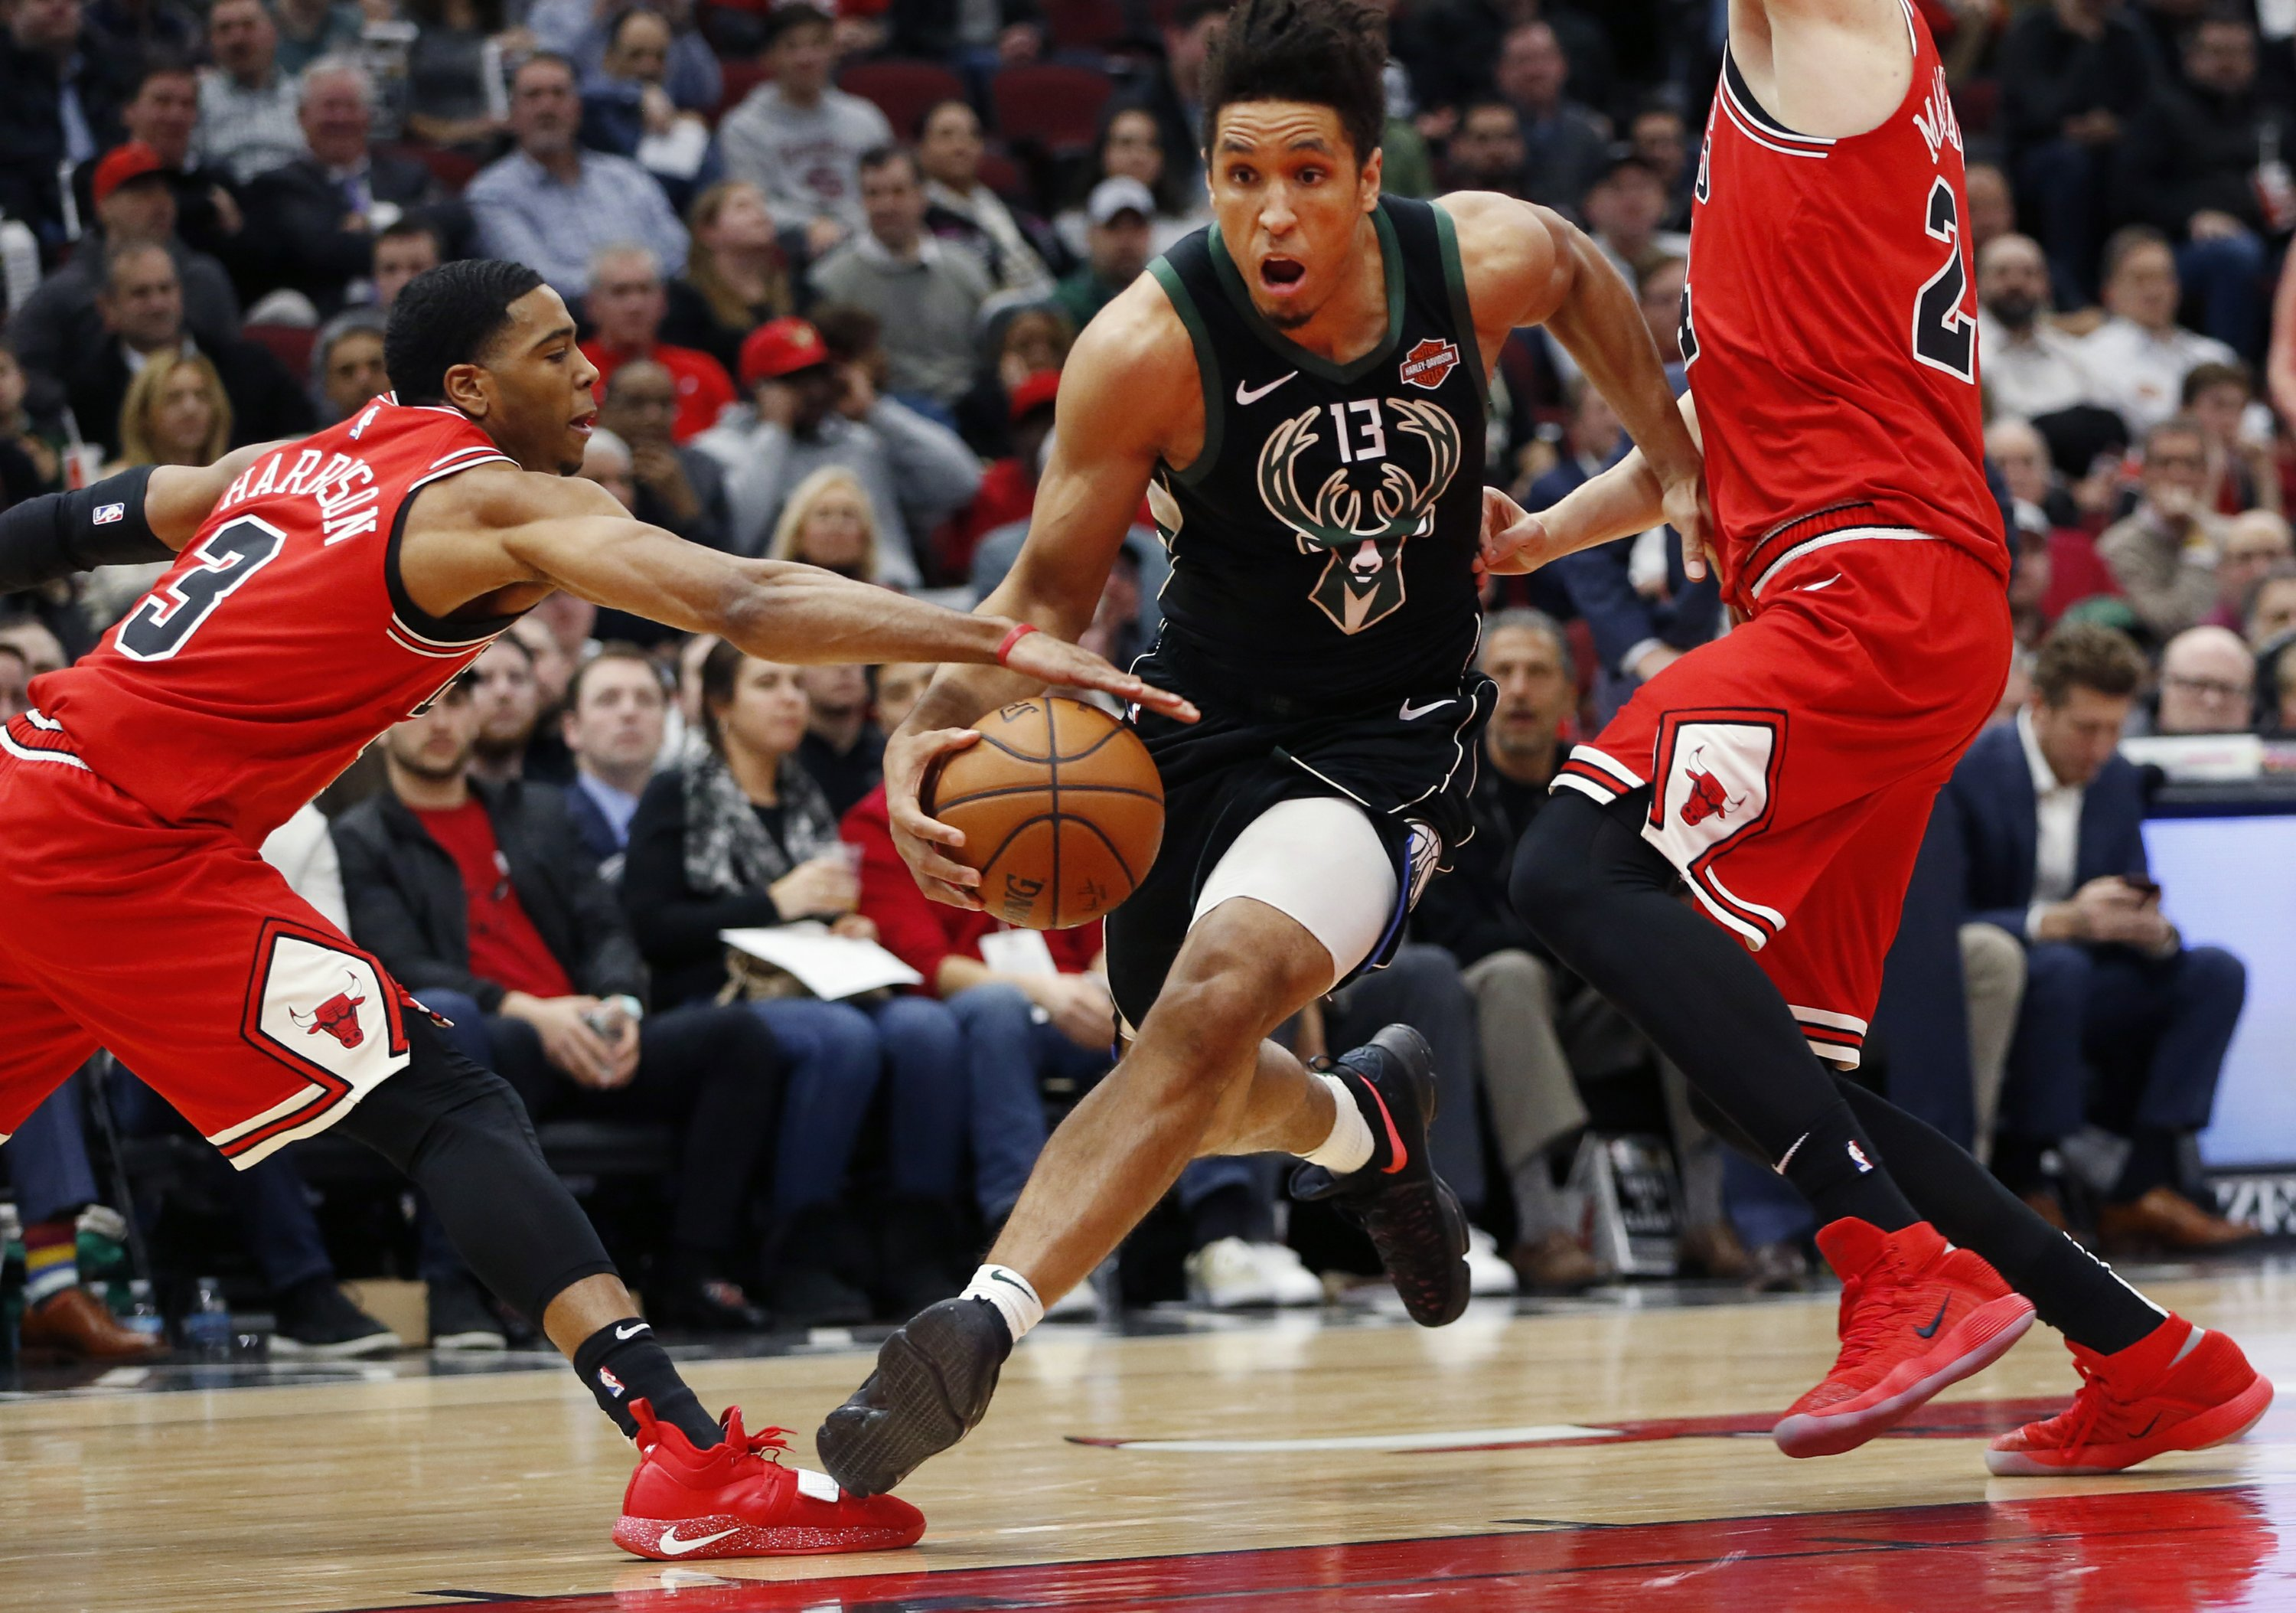 Brogdon expected to play, as Bucks look to eliminate Celtics tonight